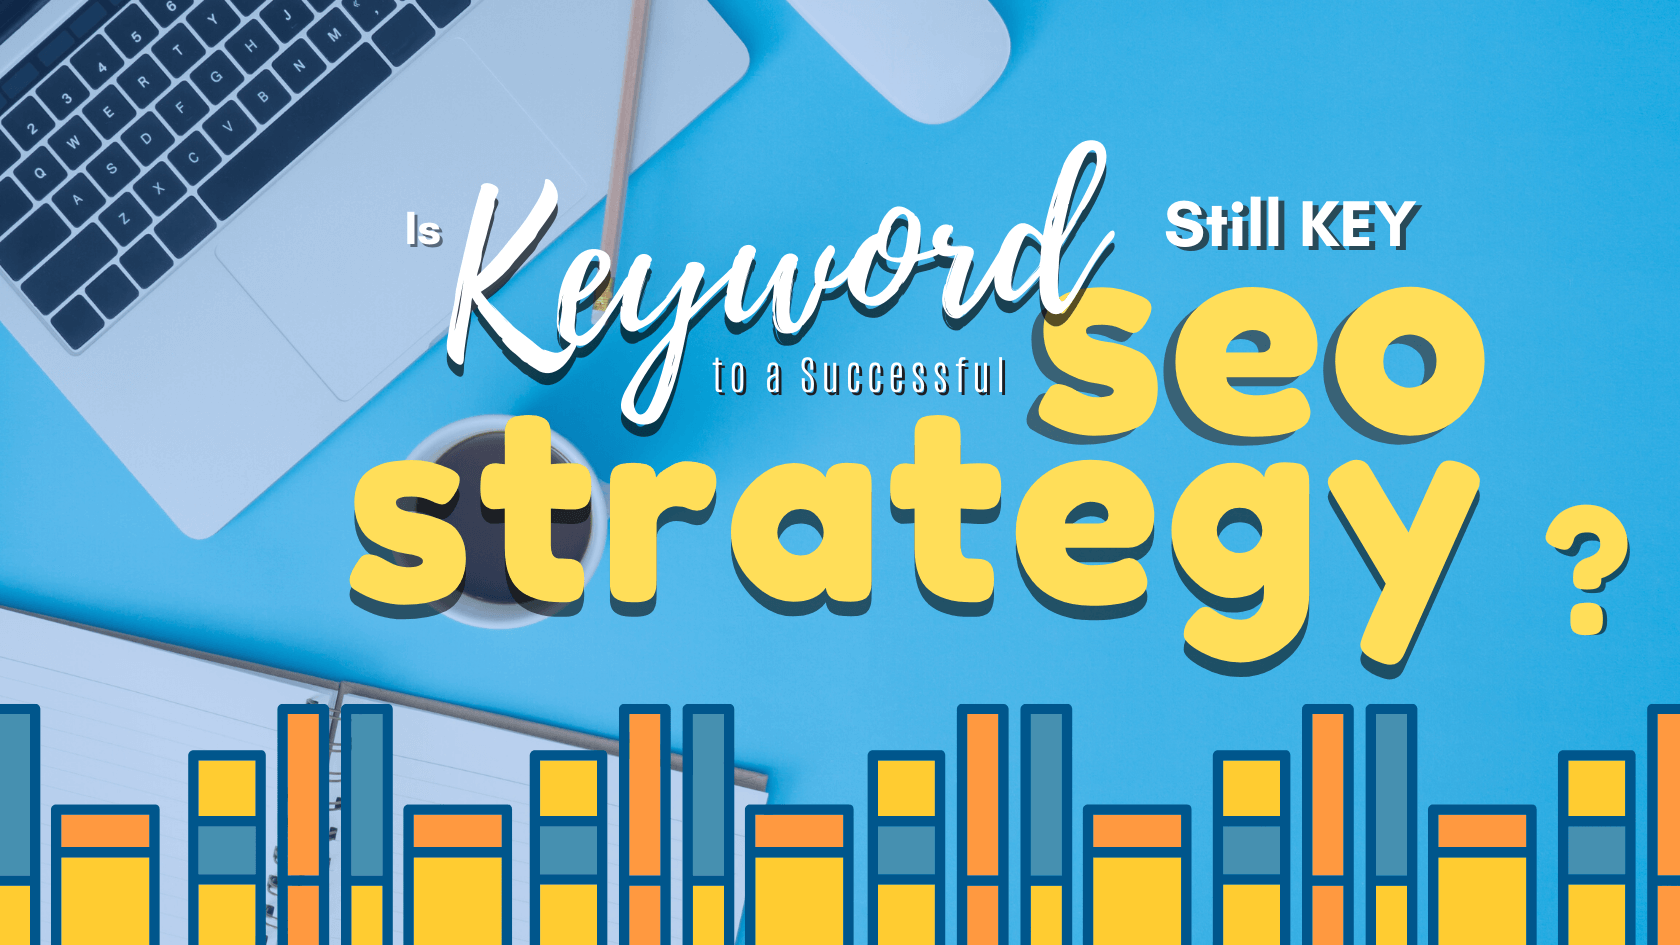 'Is keyword still key to a successful SEO strategy' written at centre and keyword and building icons in the rest of the area